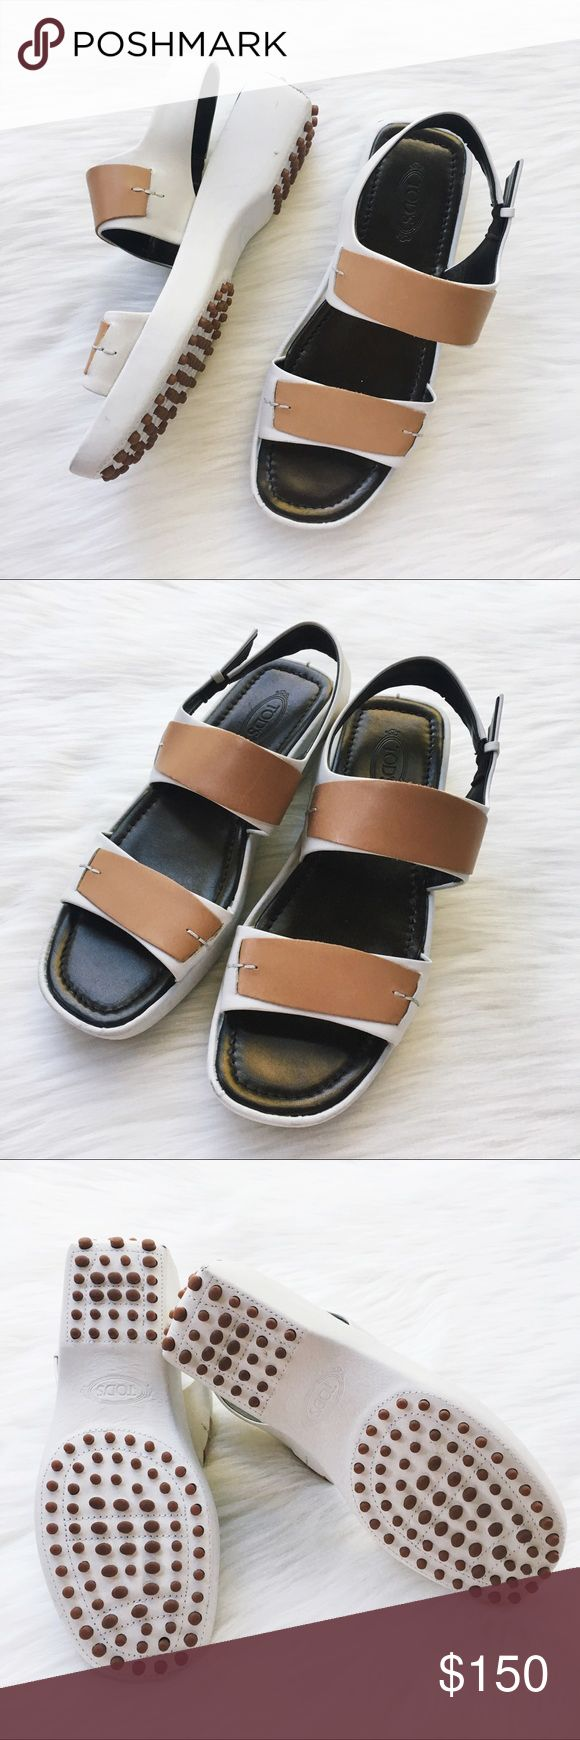 TODS Leather Slingback Sandal Very good condition, two very very small spots shown in last photo. Please inspect photos carefully. Tod's Shoes Sandals